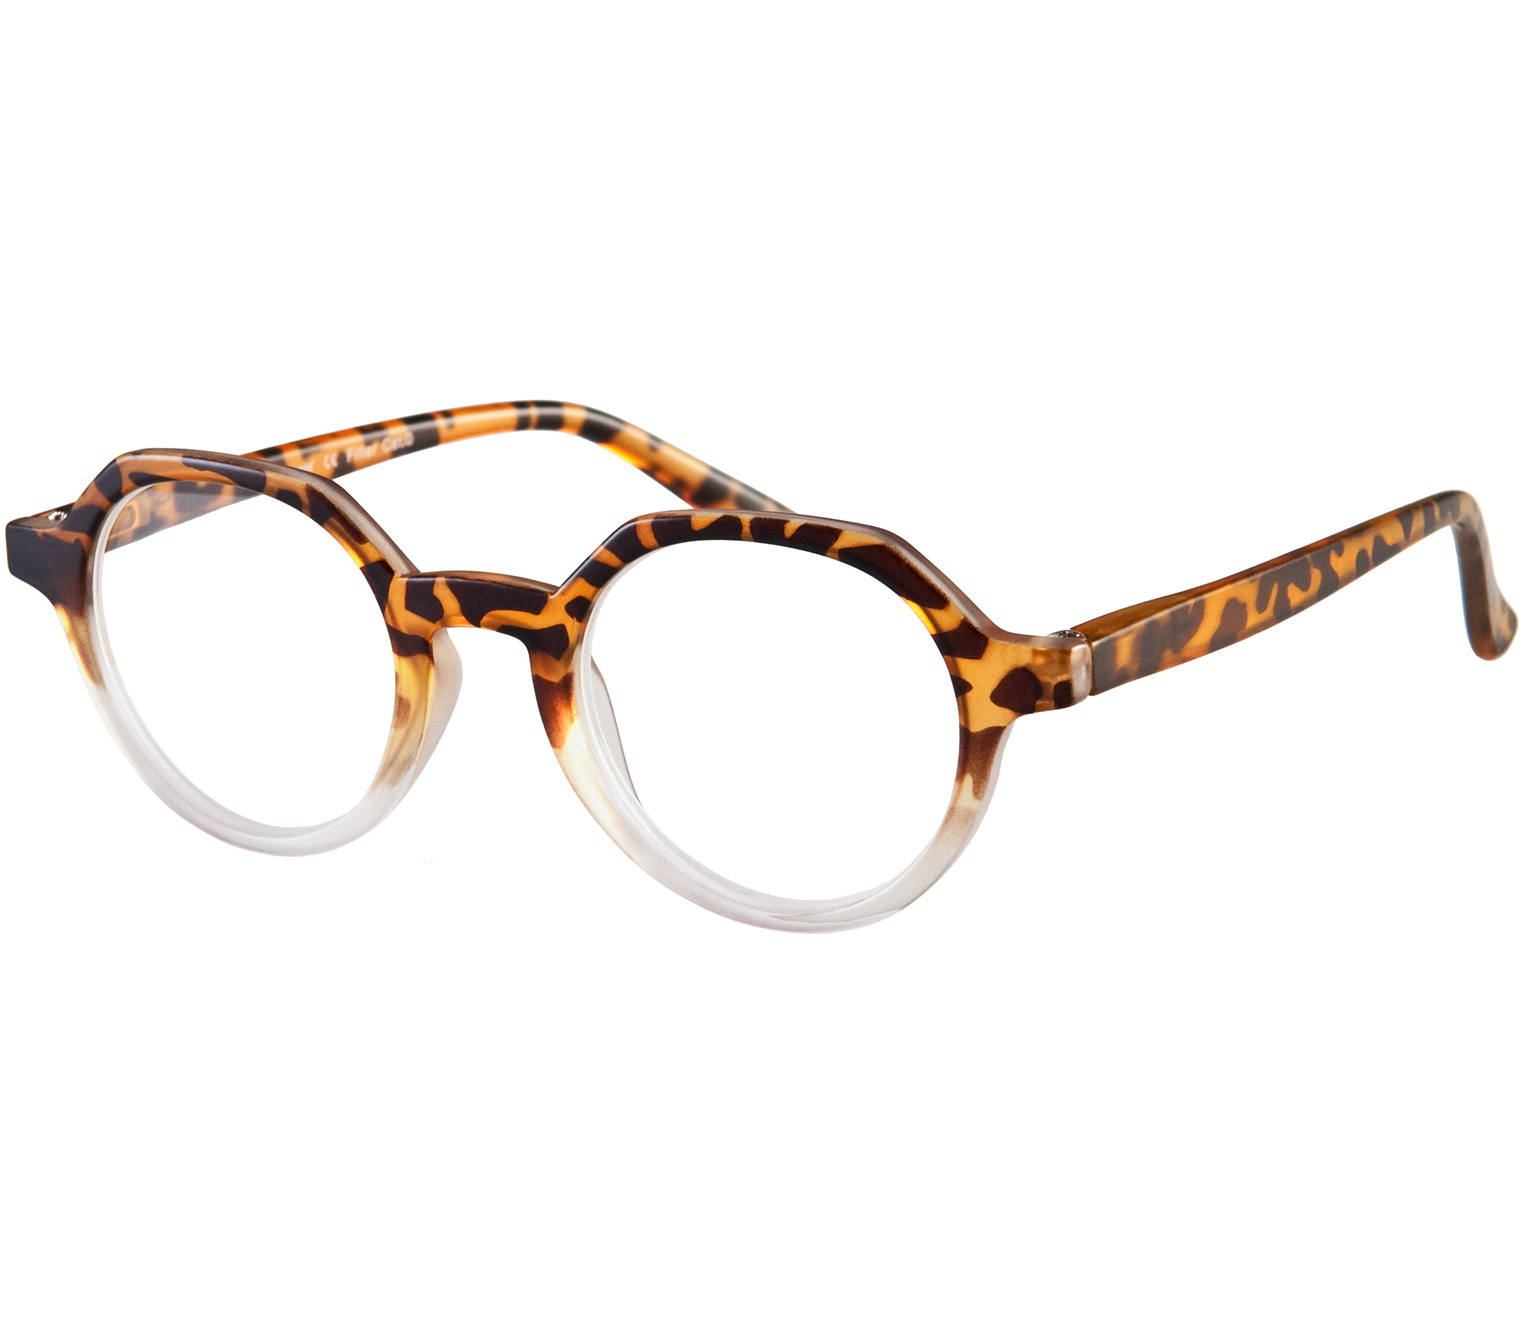 Main Image (Angle) - Montrose (Tortoiseshell) Retro Reading Glasses